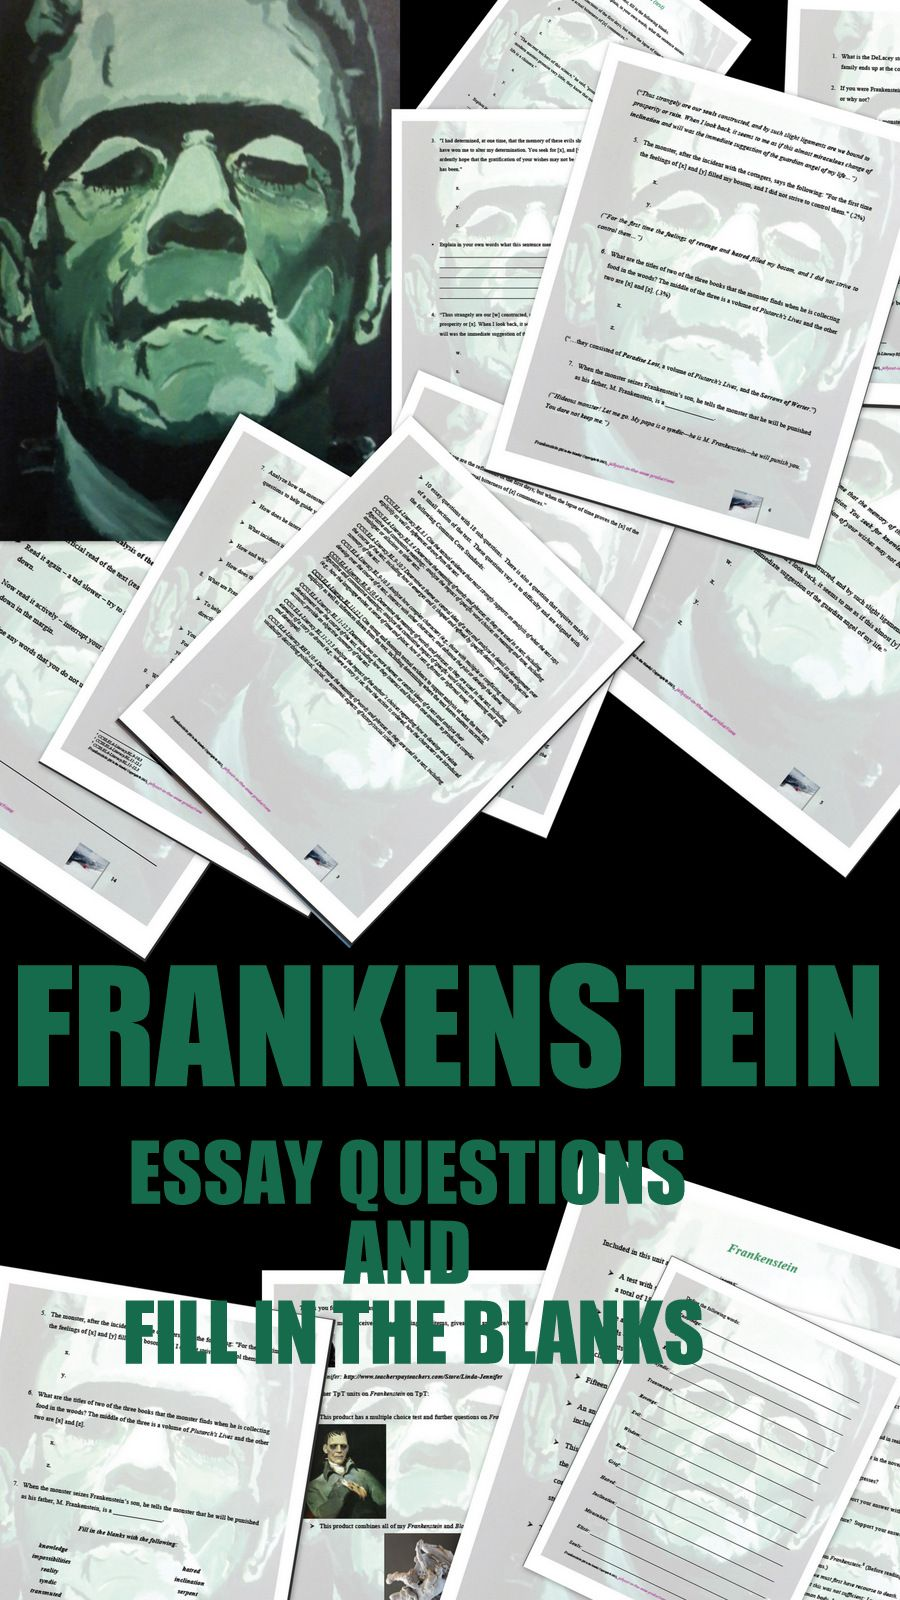 Frankenstein Activites Vocabulary Essay Qs Fill In The Blanks  Frankenstein Included Here A Test With  Fill In The Blank Questions A  Total Of  Words Need To Be Placed In The Appropriate Spaces